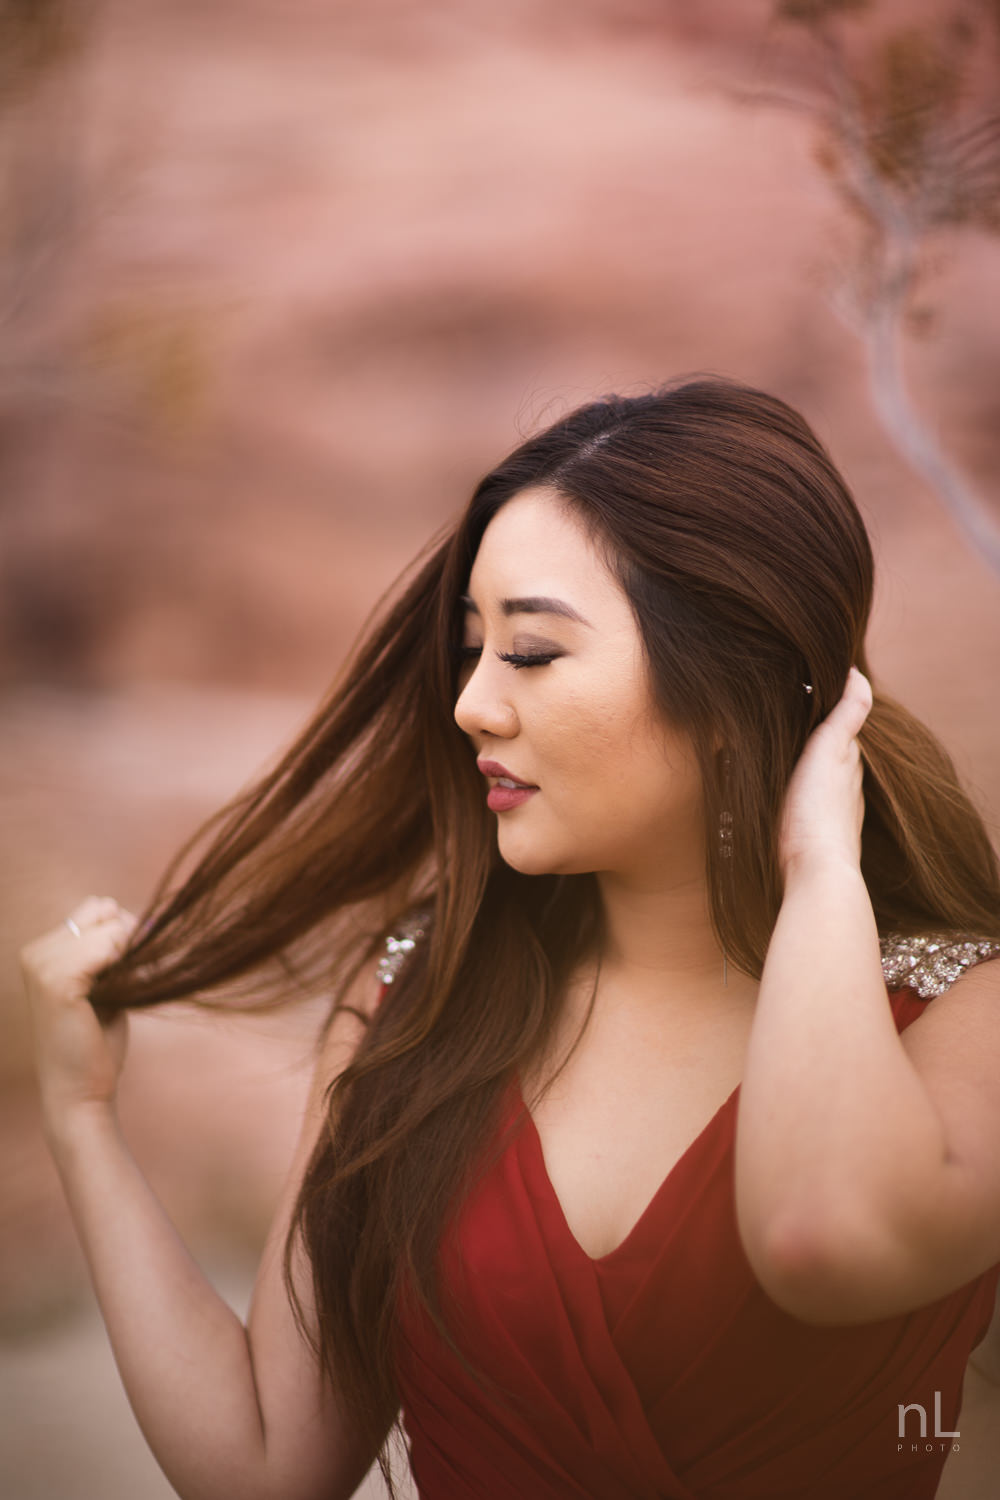 Portrait of Asian model in long, flowing, red dress, running hand through hair in Red Rock Canyon.